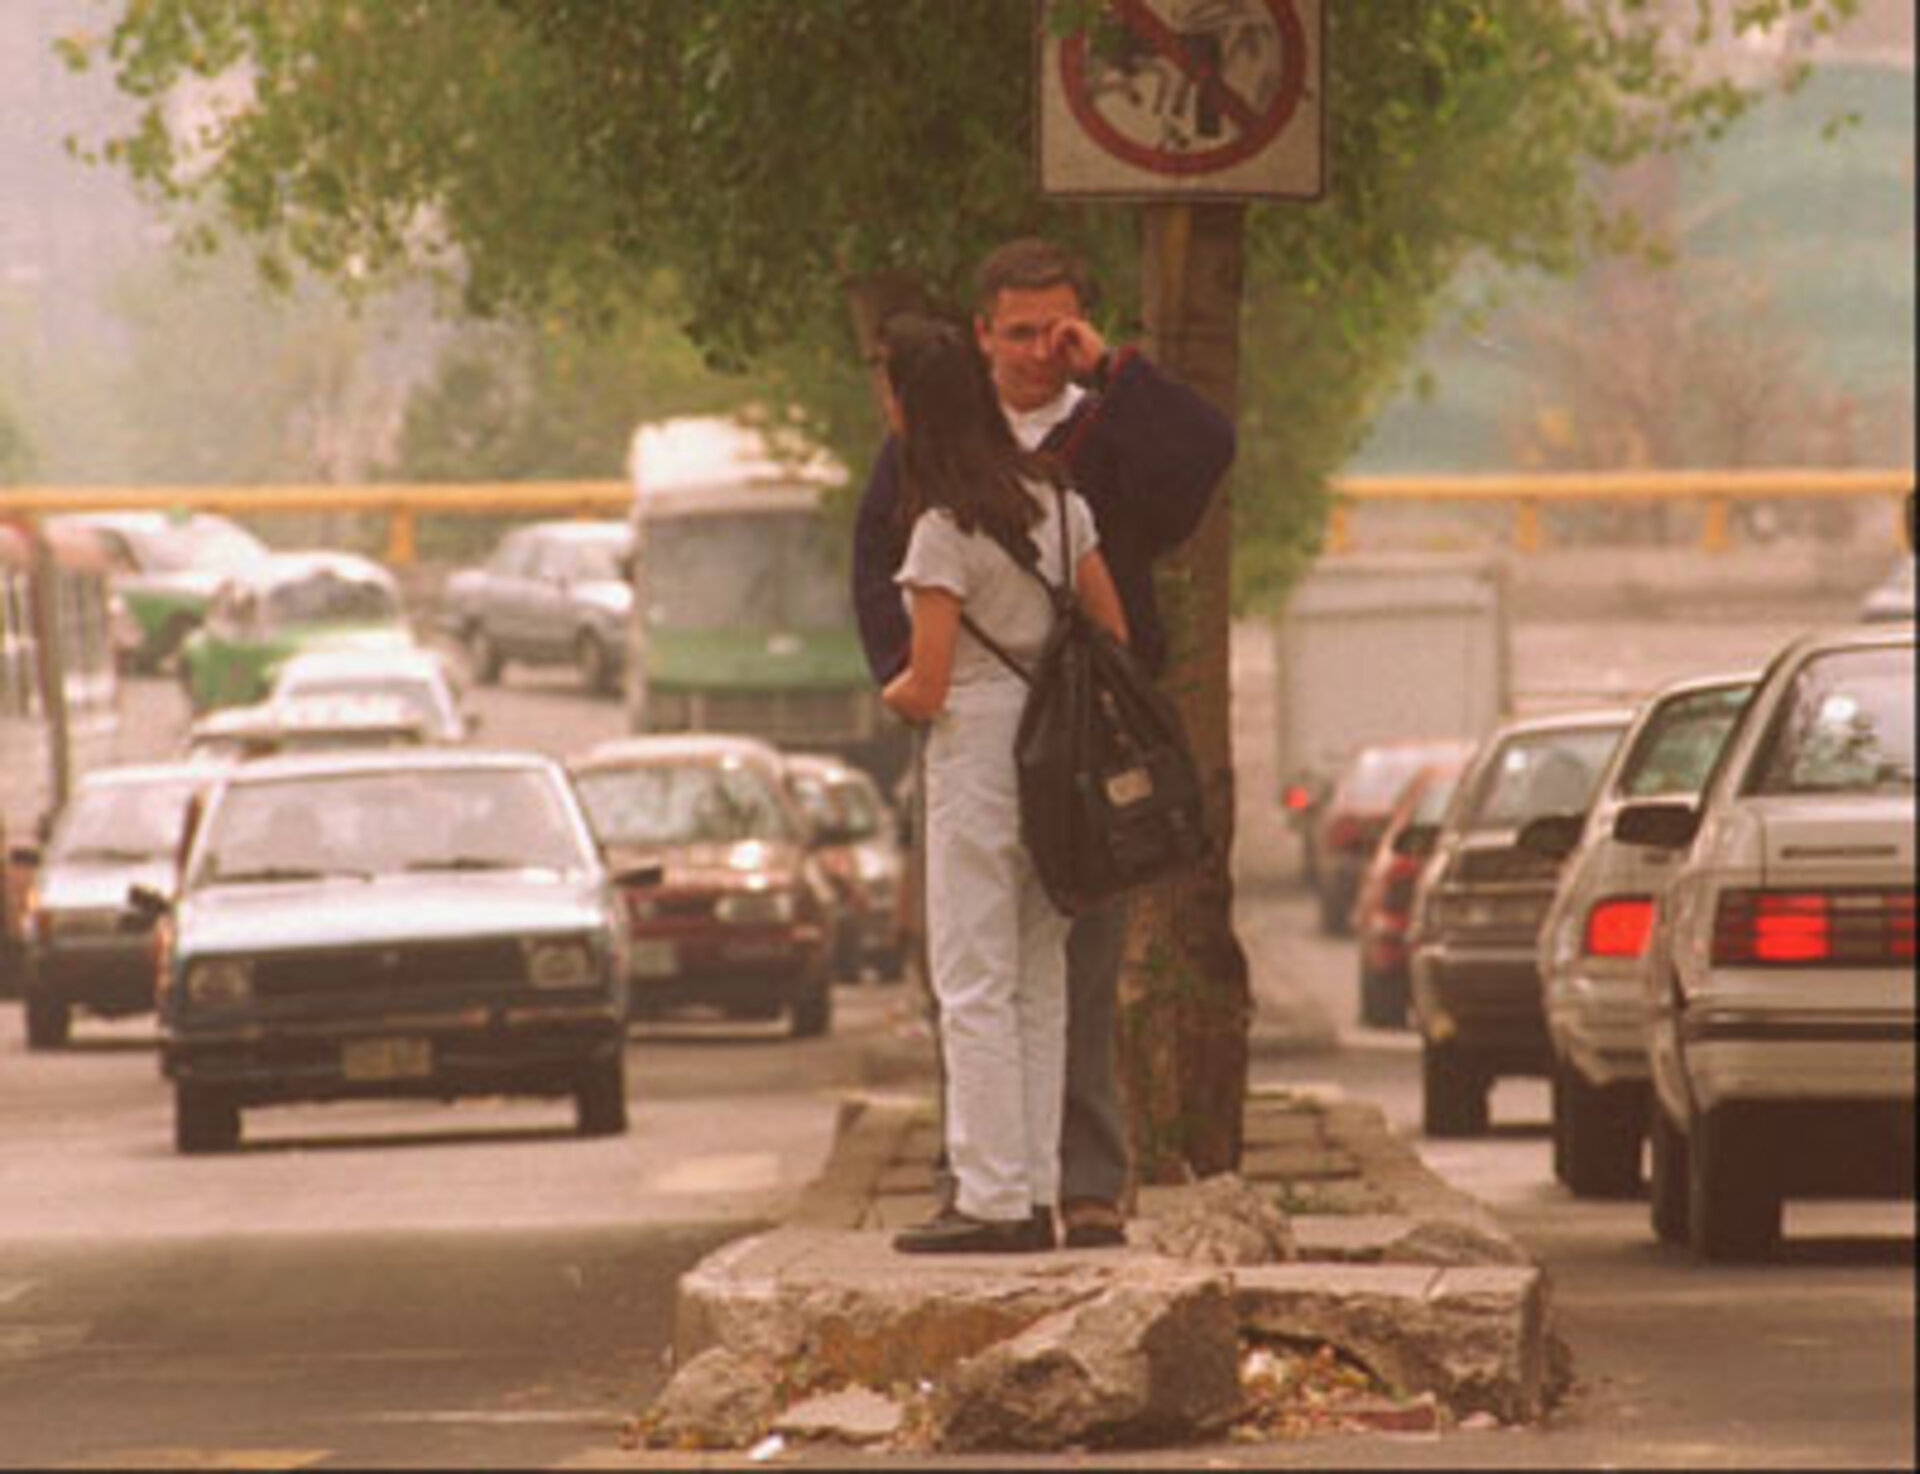 At a Mexico City intersection, an unidentified man rubs his eyes as the couple waits to cross the traffic